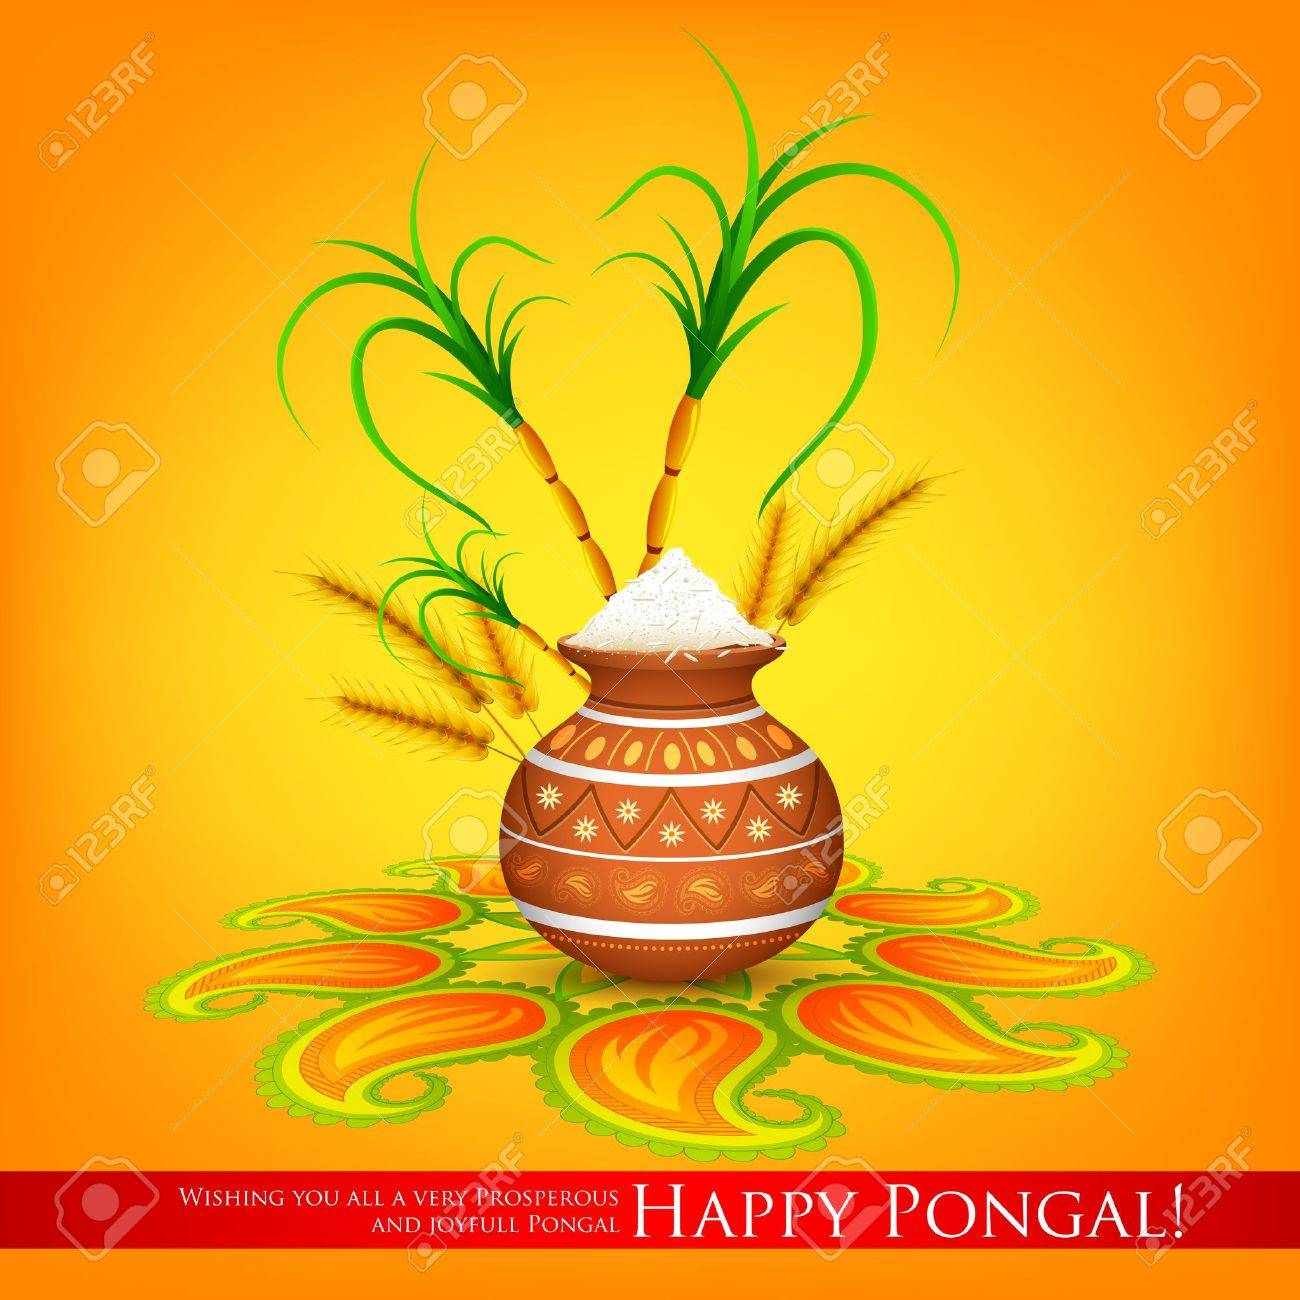 Illustration of happy pongal greeting background royalty free illustration of happy pongal greeting background stock vector 25731064 kristyandbryce Images